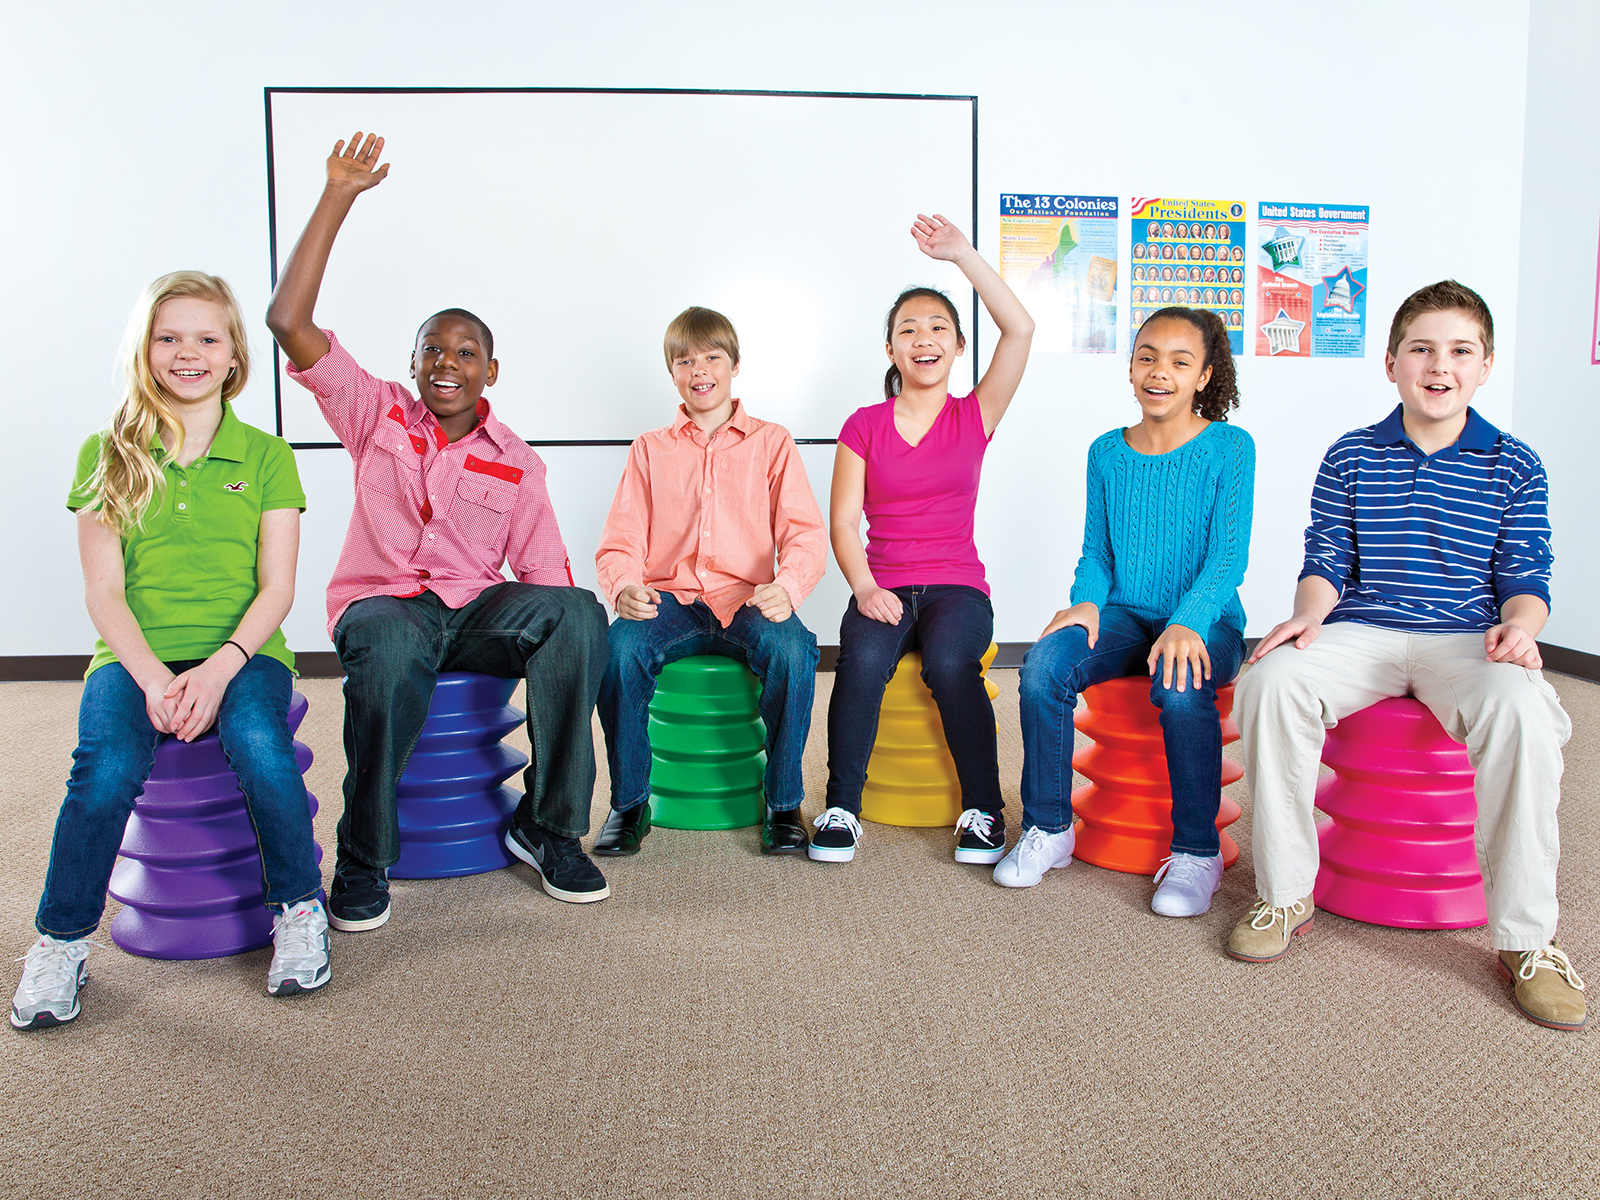 Children on elementary ergonomic seats